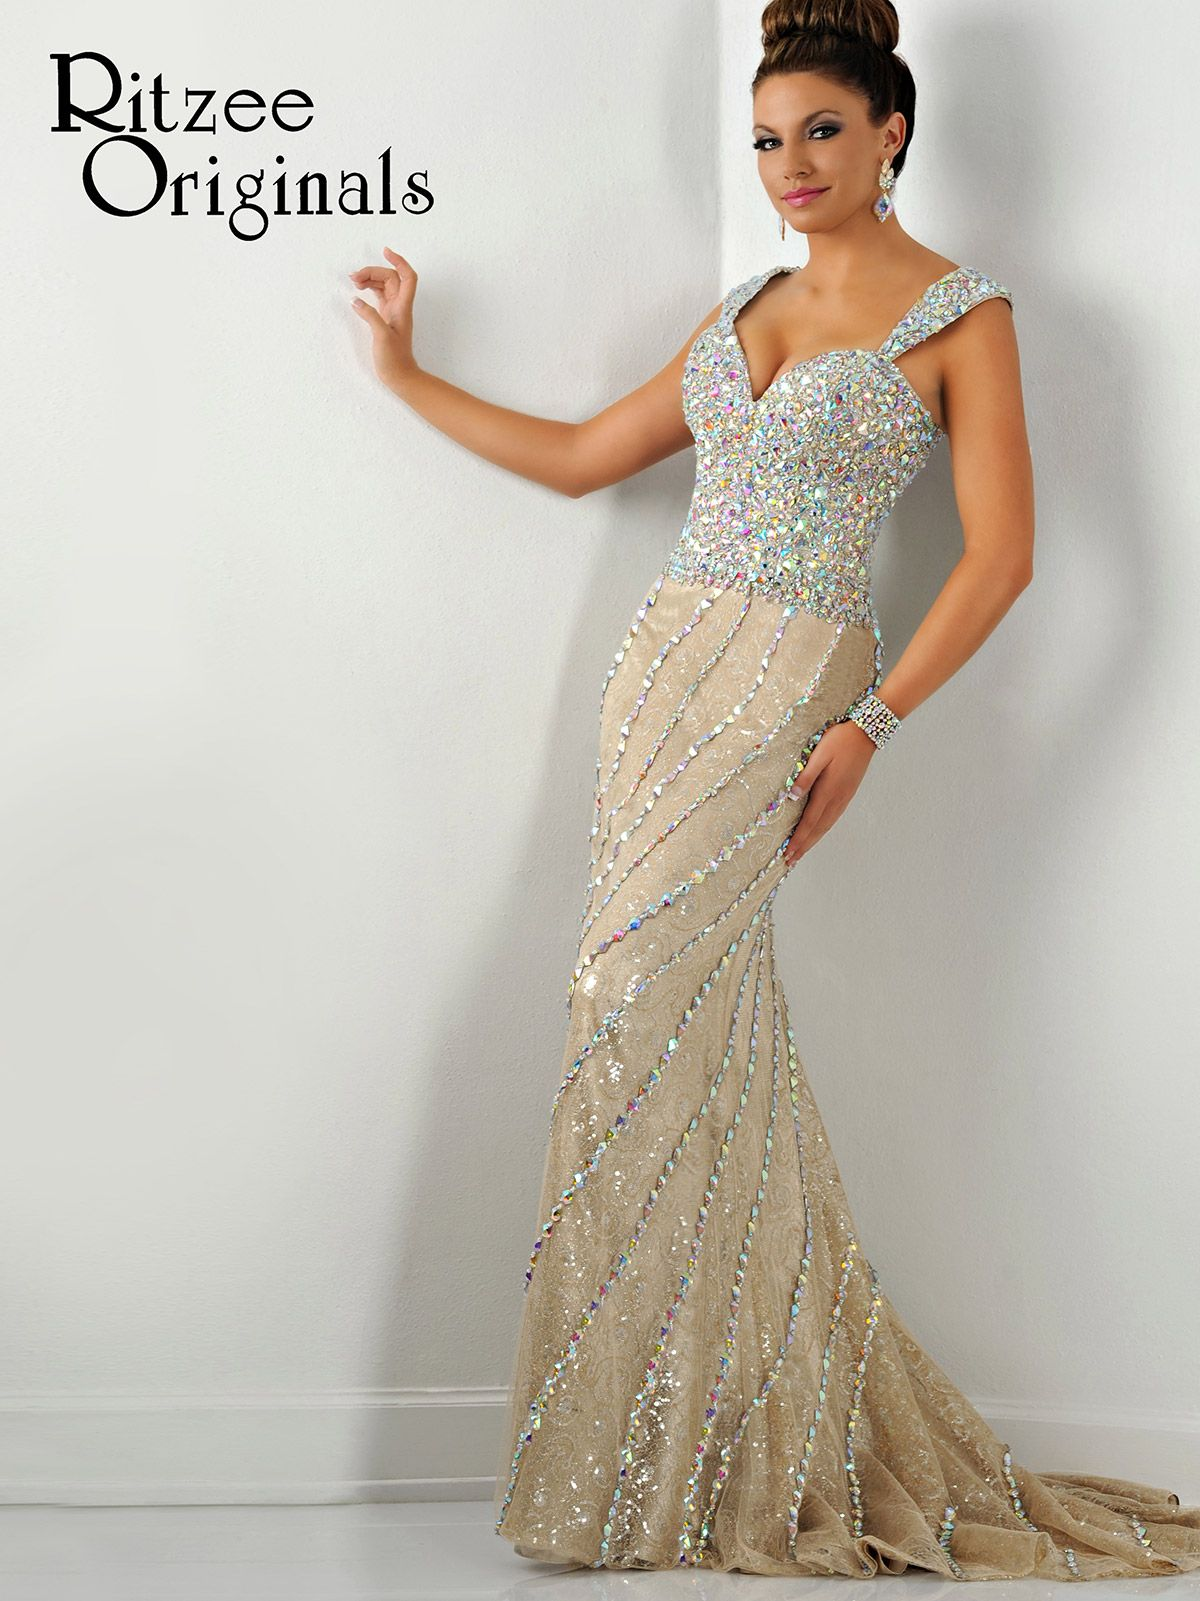 A stunner, this dazzling Ritzee Originals pageant dress is a ...